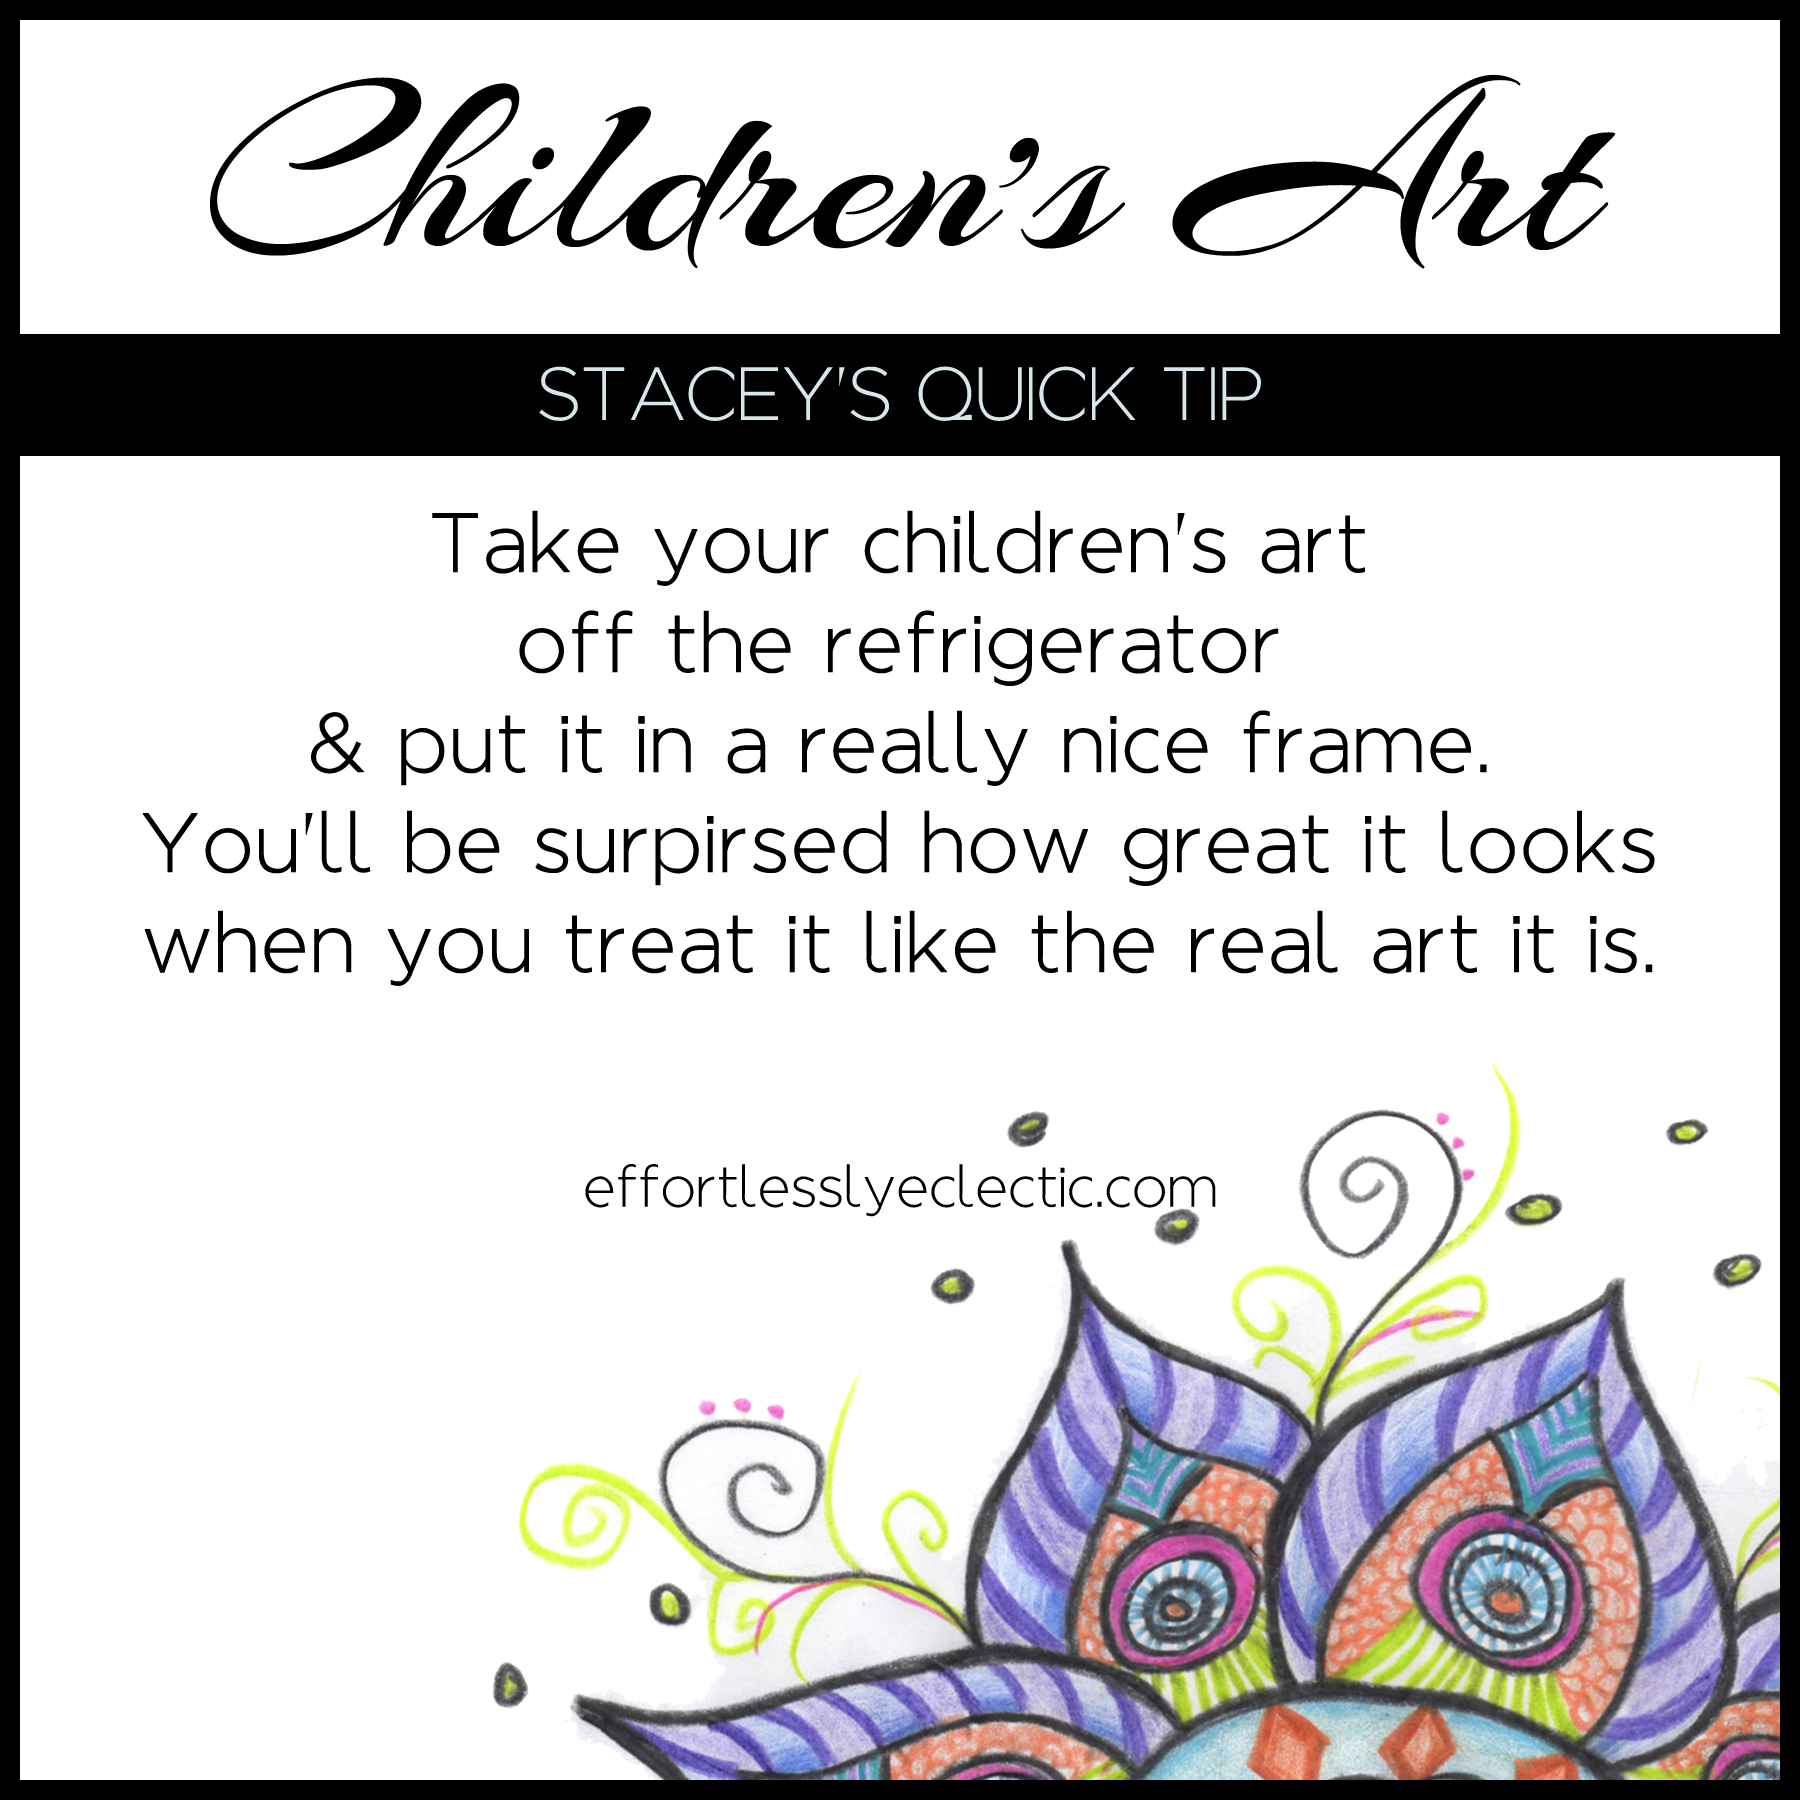 Children's Art - A home decor tip about decorating with children's art